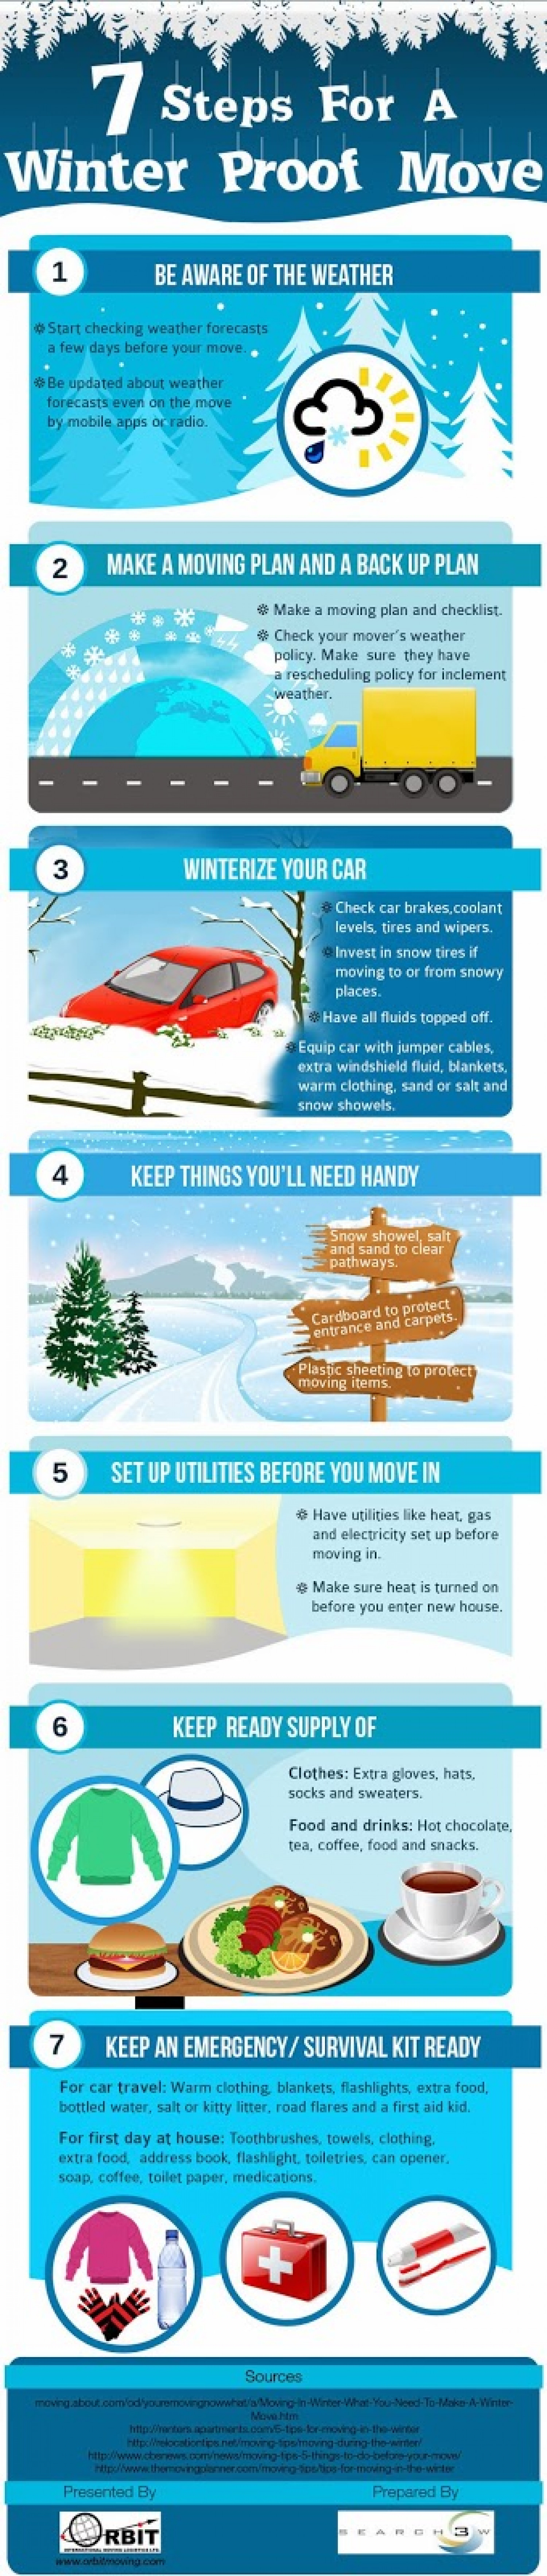 7 Steps For A Winter Proof Move Infographic